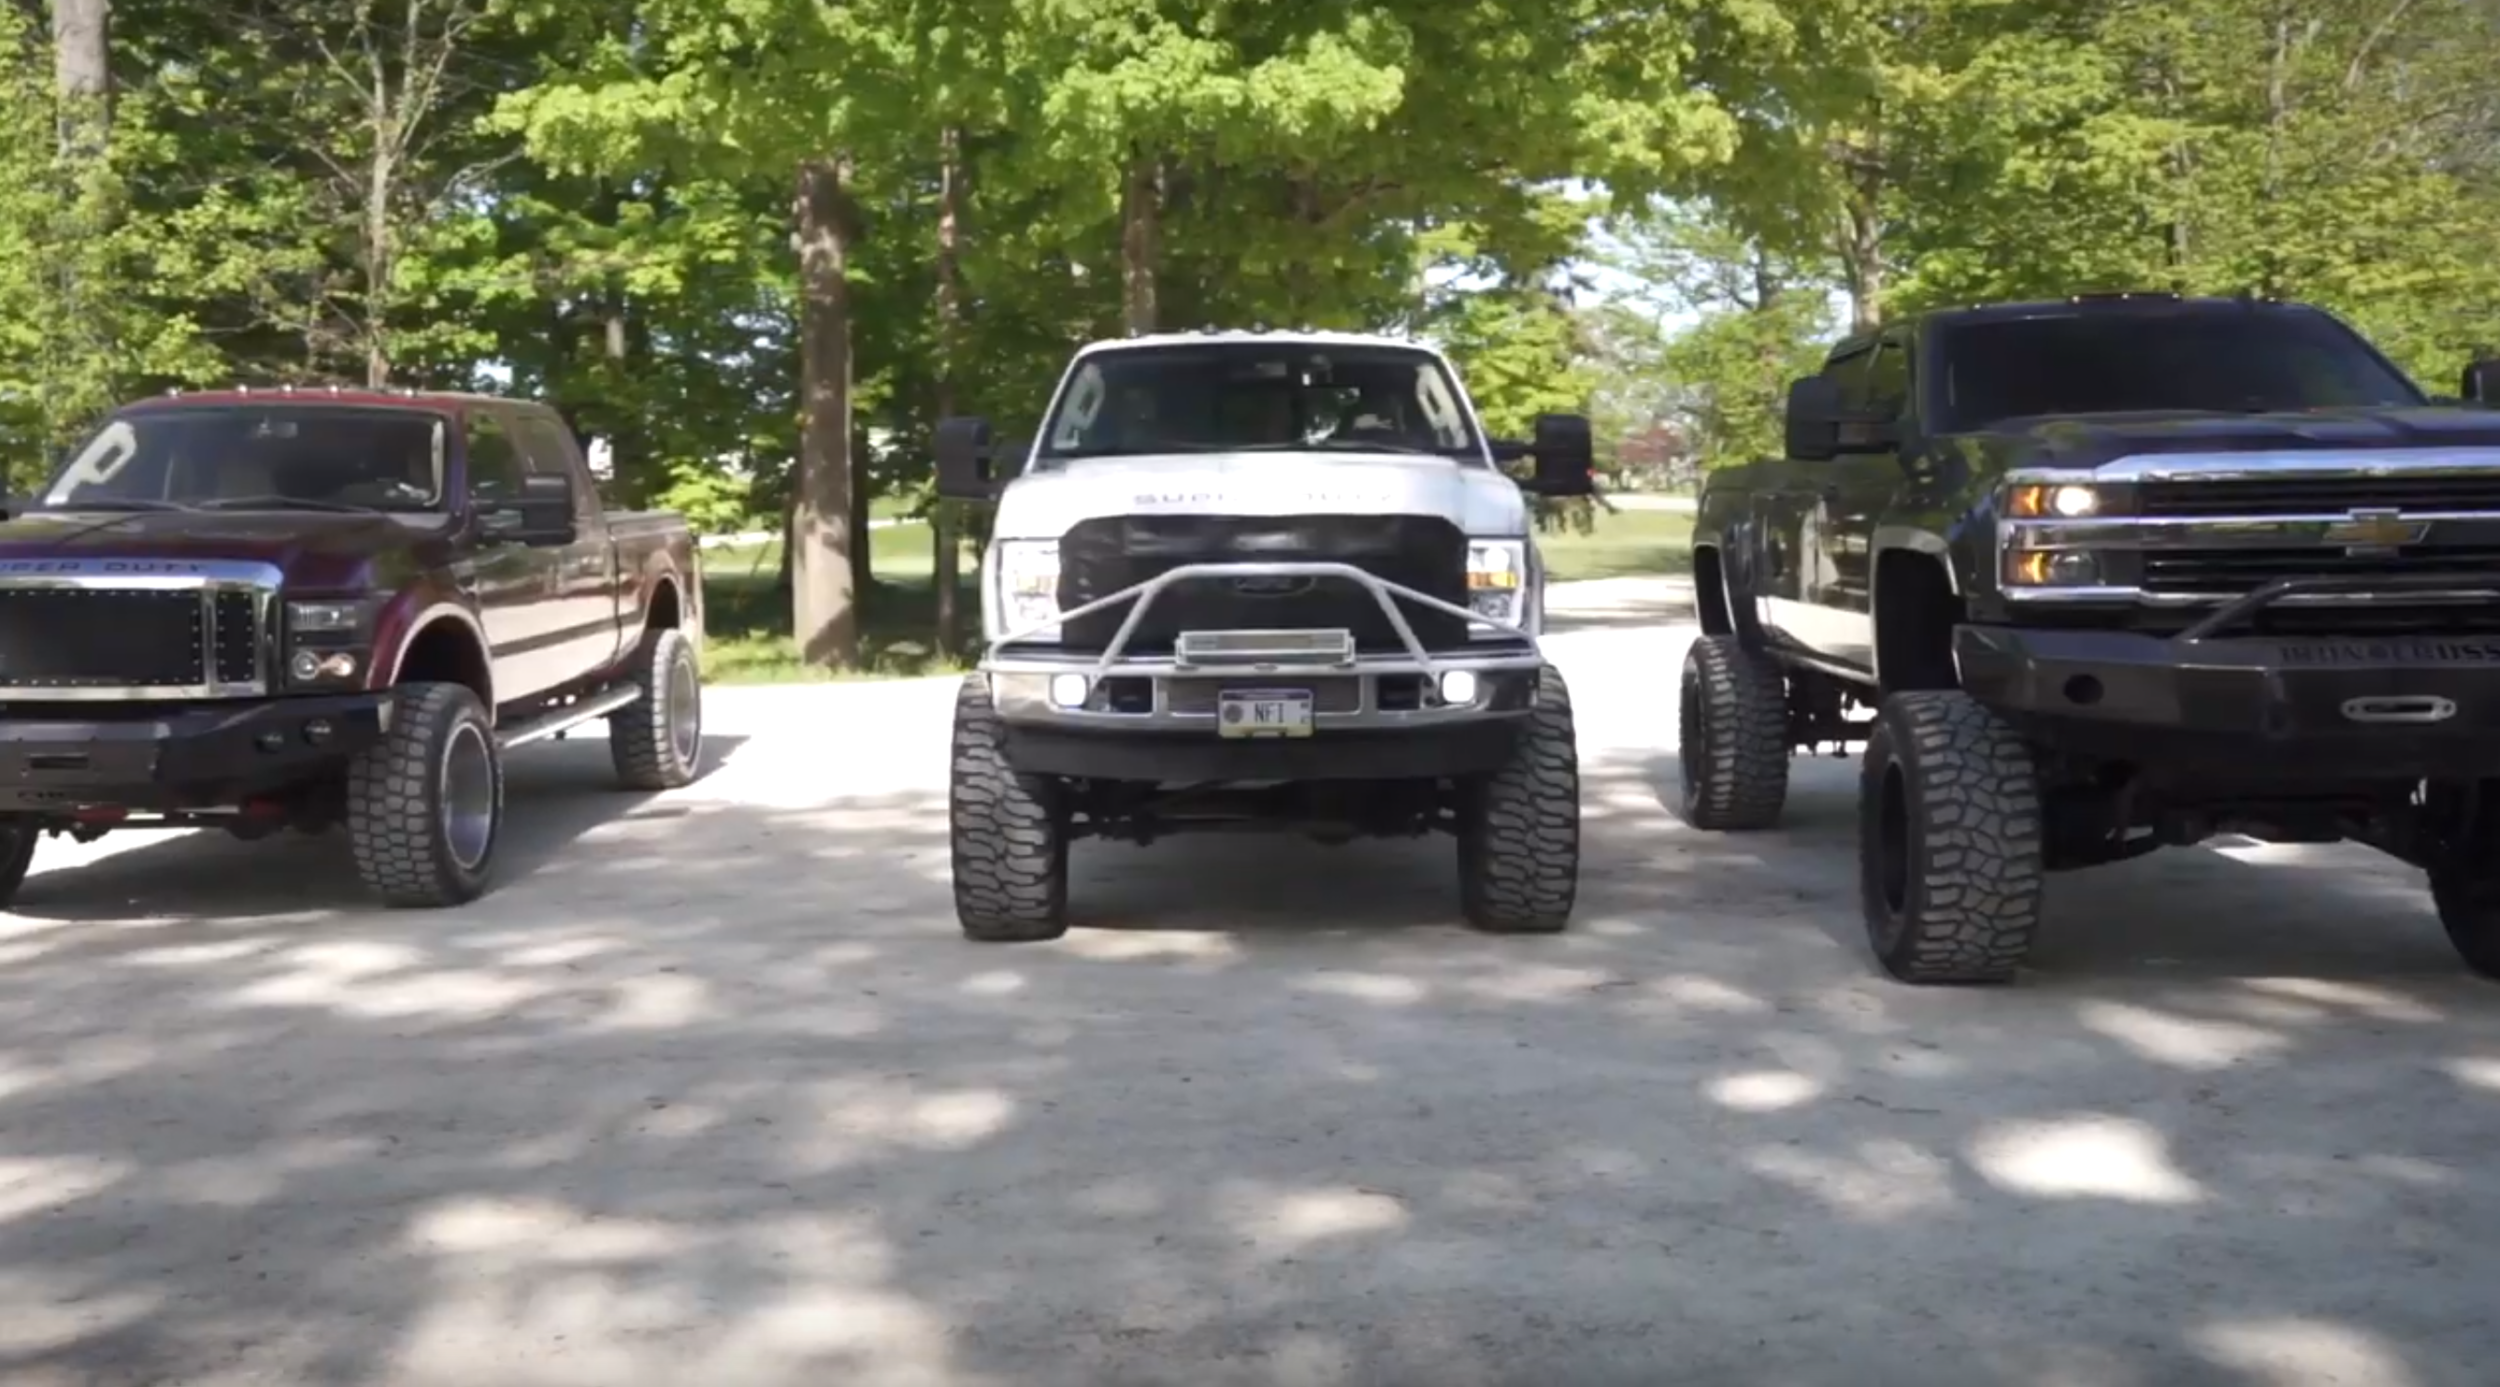 Lifted Diesels Dominate the Trails - Click to View